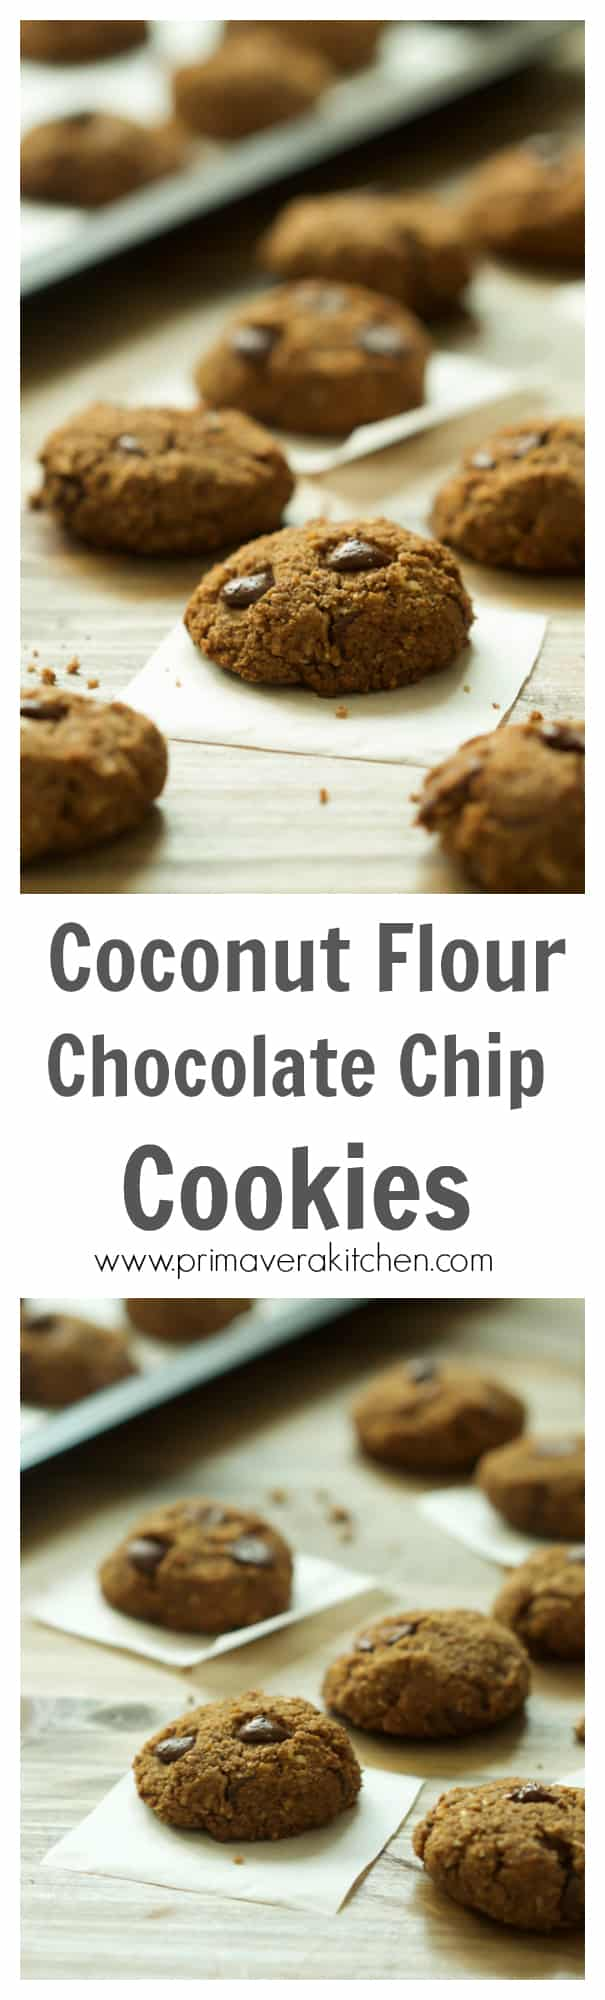 Gluten-free Coconut Flour Chocolate Chip Cookies - Primavera Kitchen